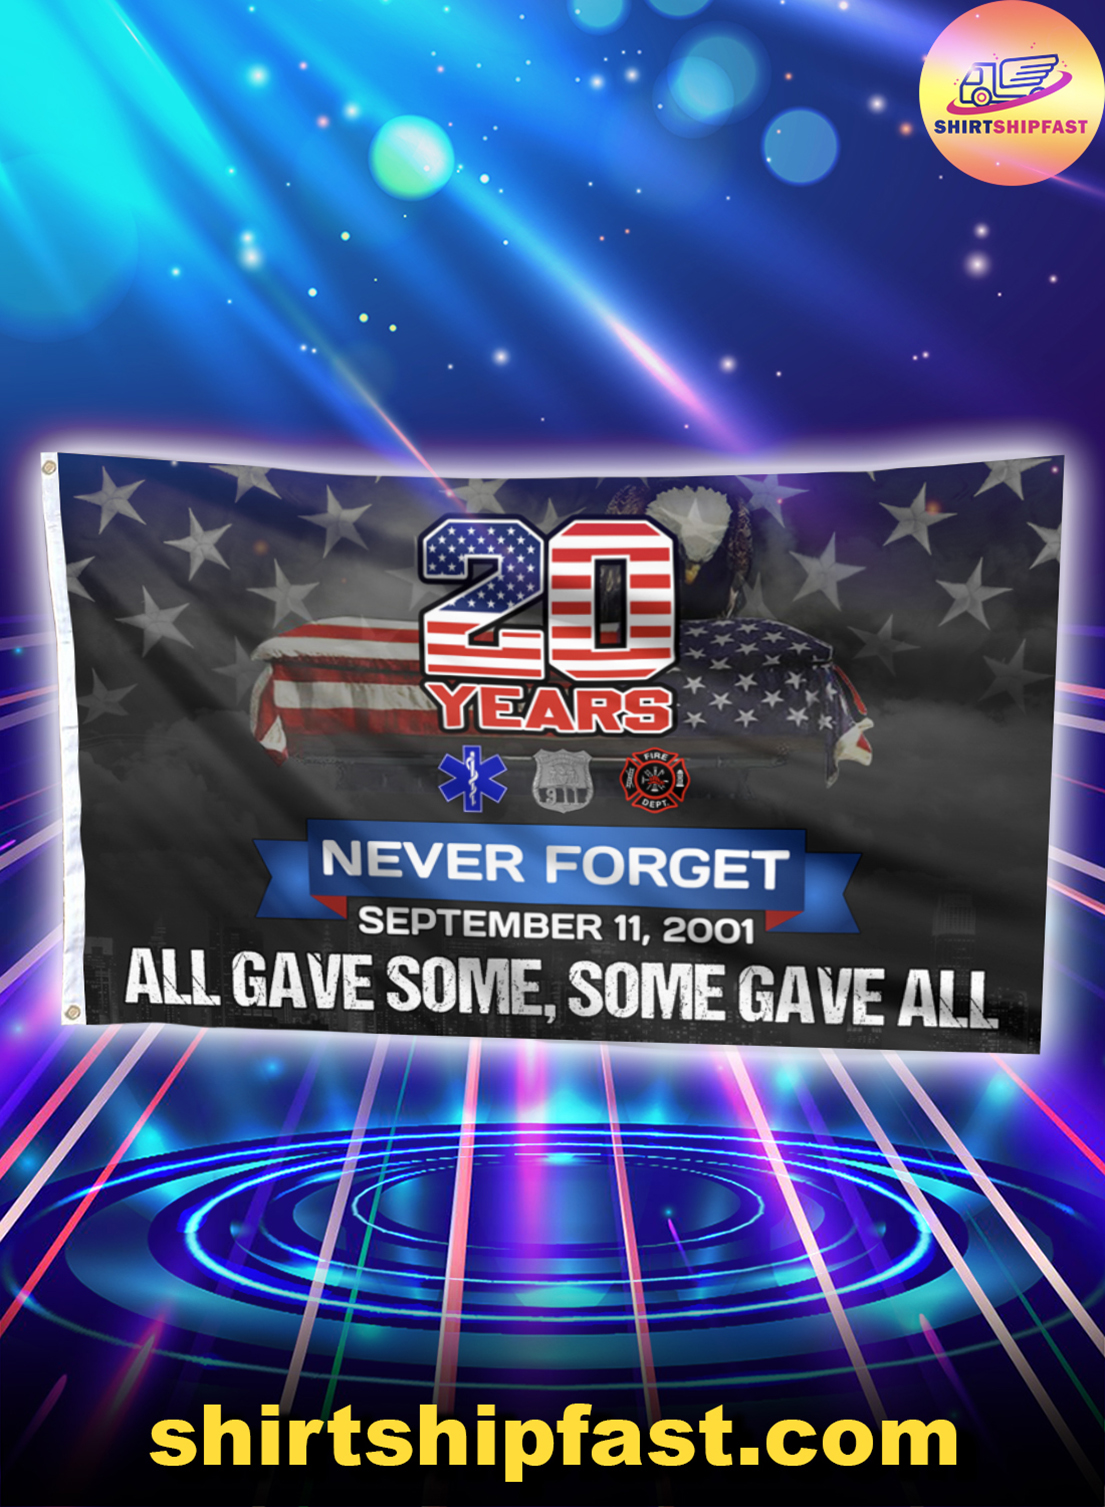 20 Years Never forget September 11 2001 All gave som some gave all flag - Picture 1